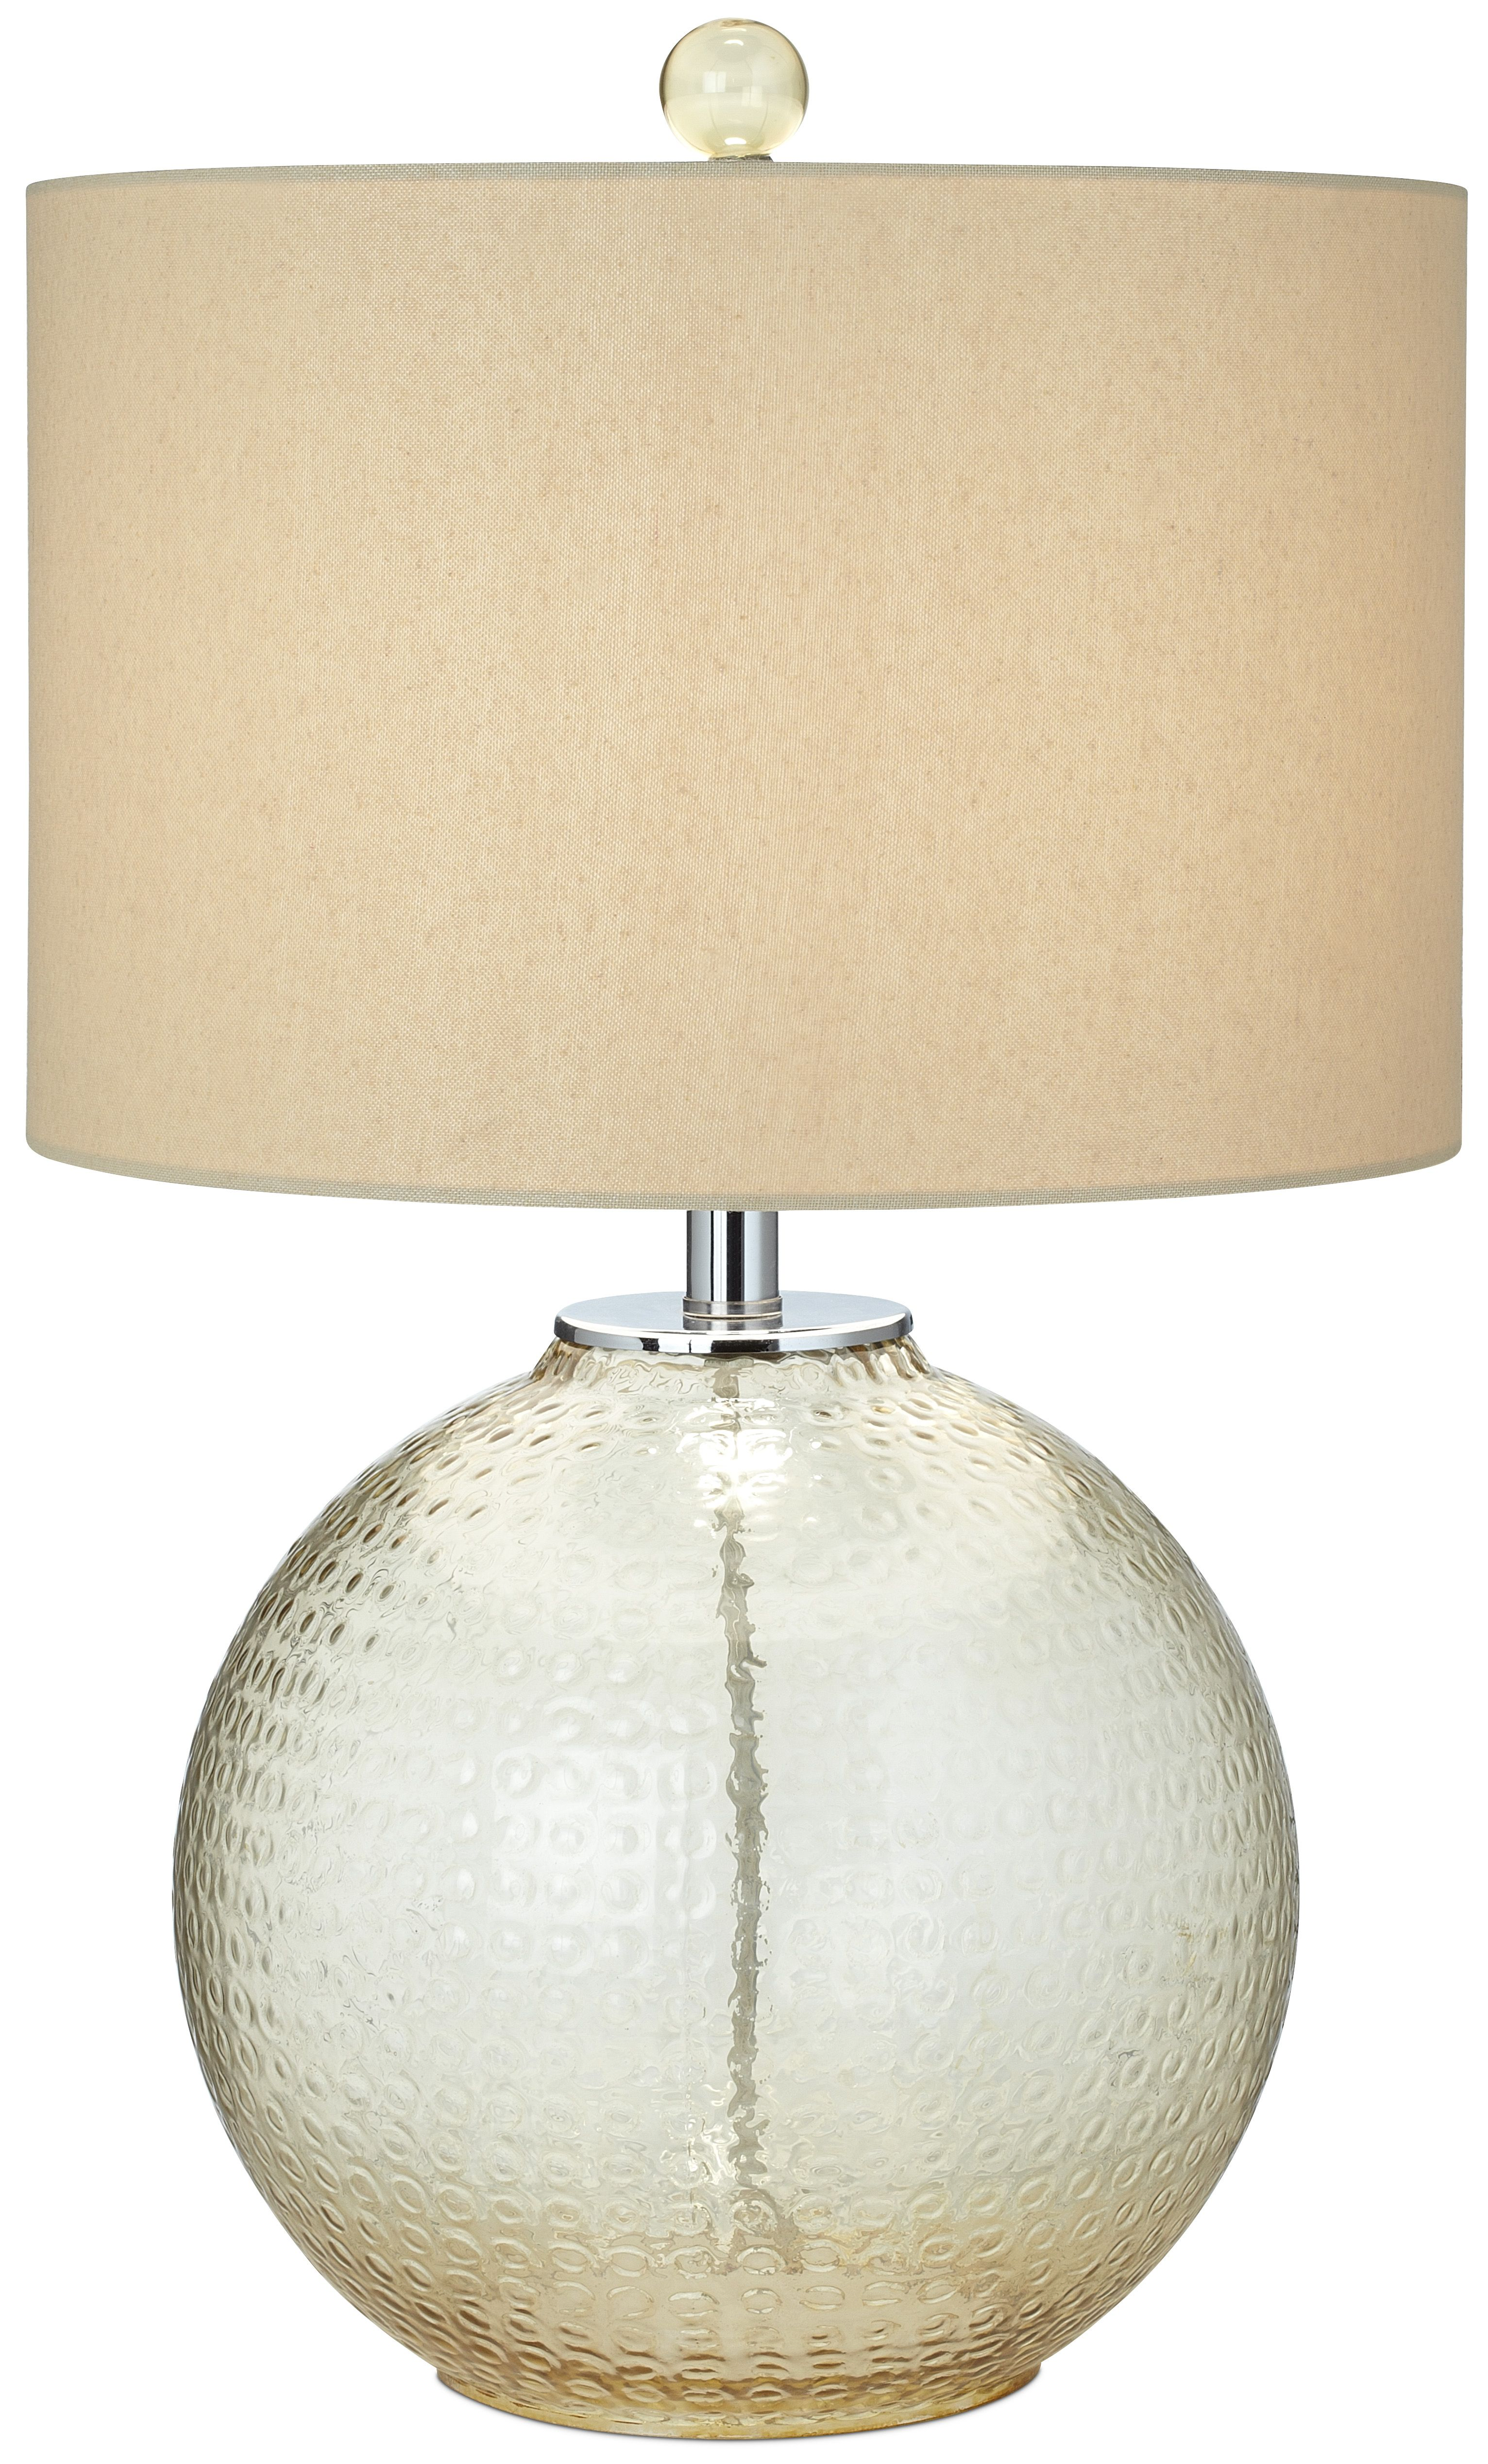 The simple design of the oculus table lamp from pacific coast the simple design of the oculus table lamp from pacific coast lighting features a round glass aloadofball Images